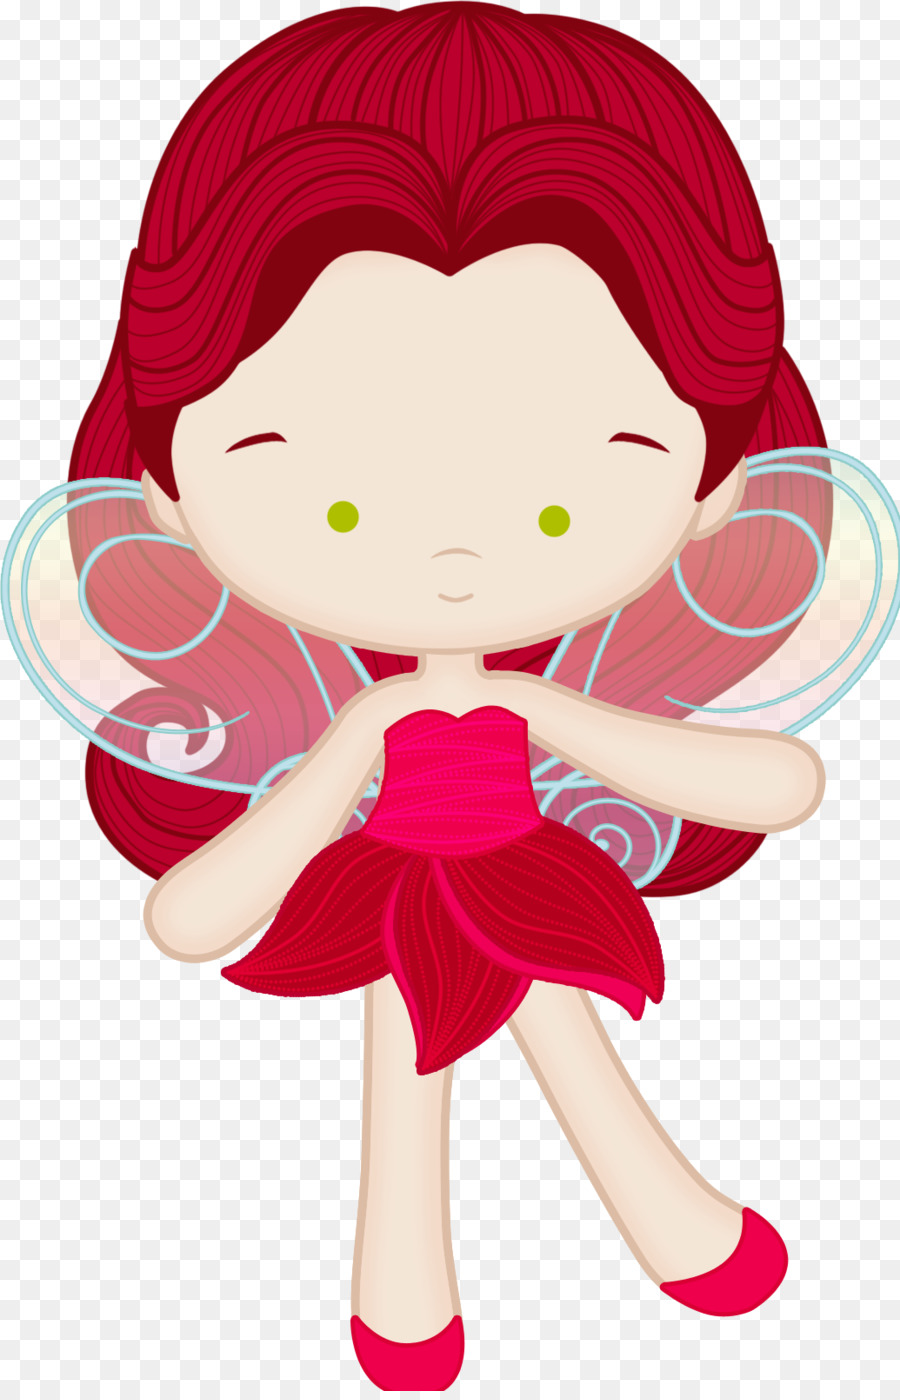 Drawing Fairy Merida Tinker Bell Clip art - fan bingbing 1035*1600  transprent Png Free Download - Child, Magenta, Art.